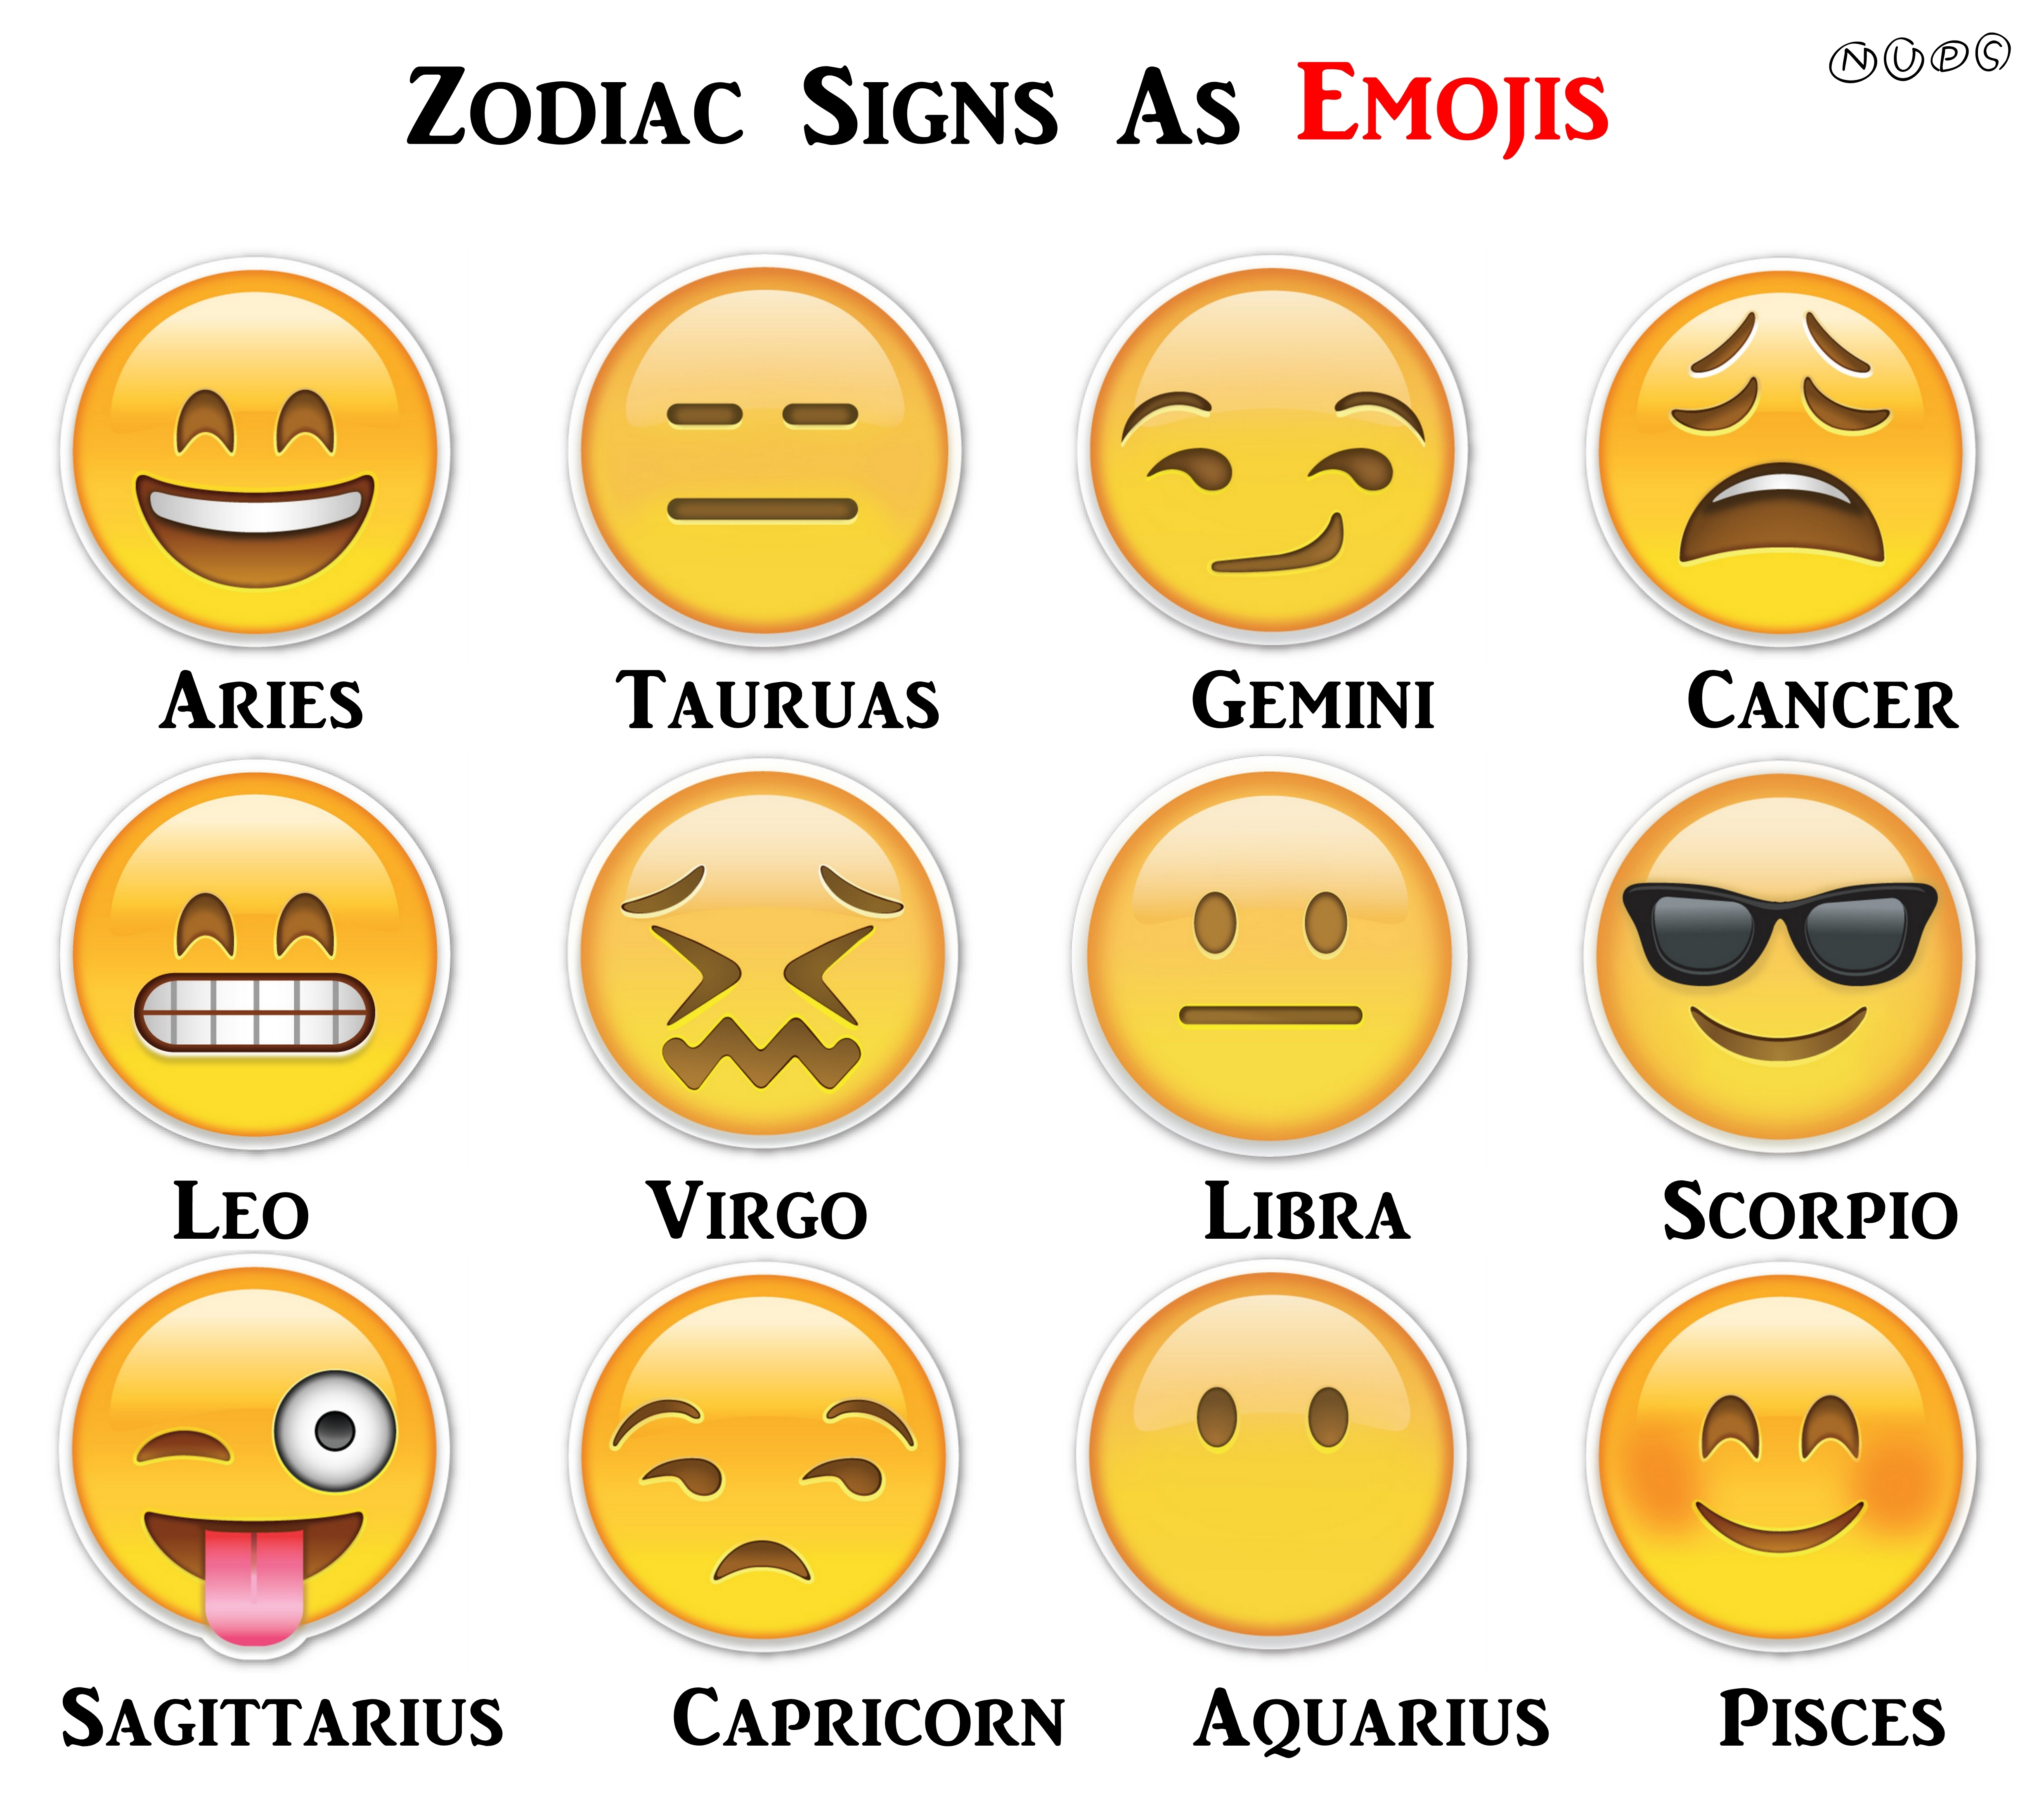 If Zodiac Signs Were Emojis | Playbuzz